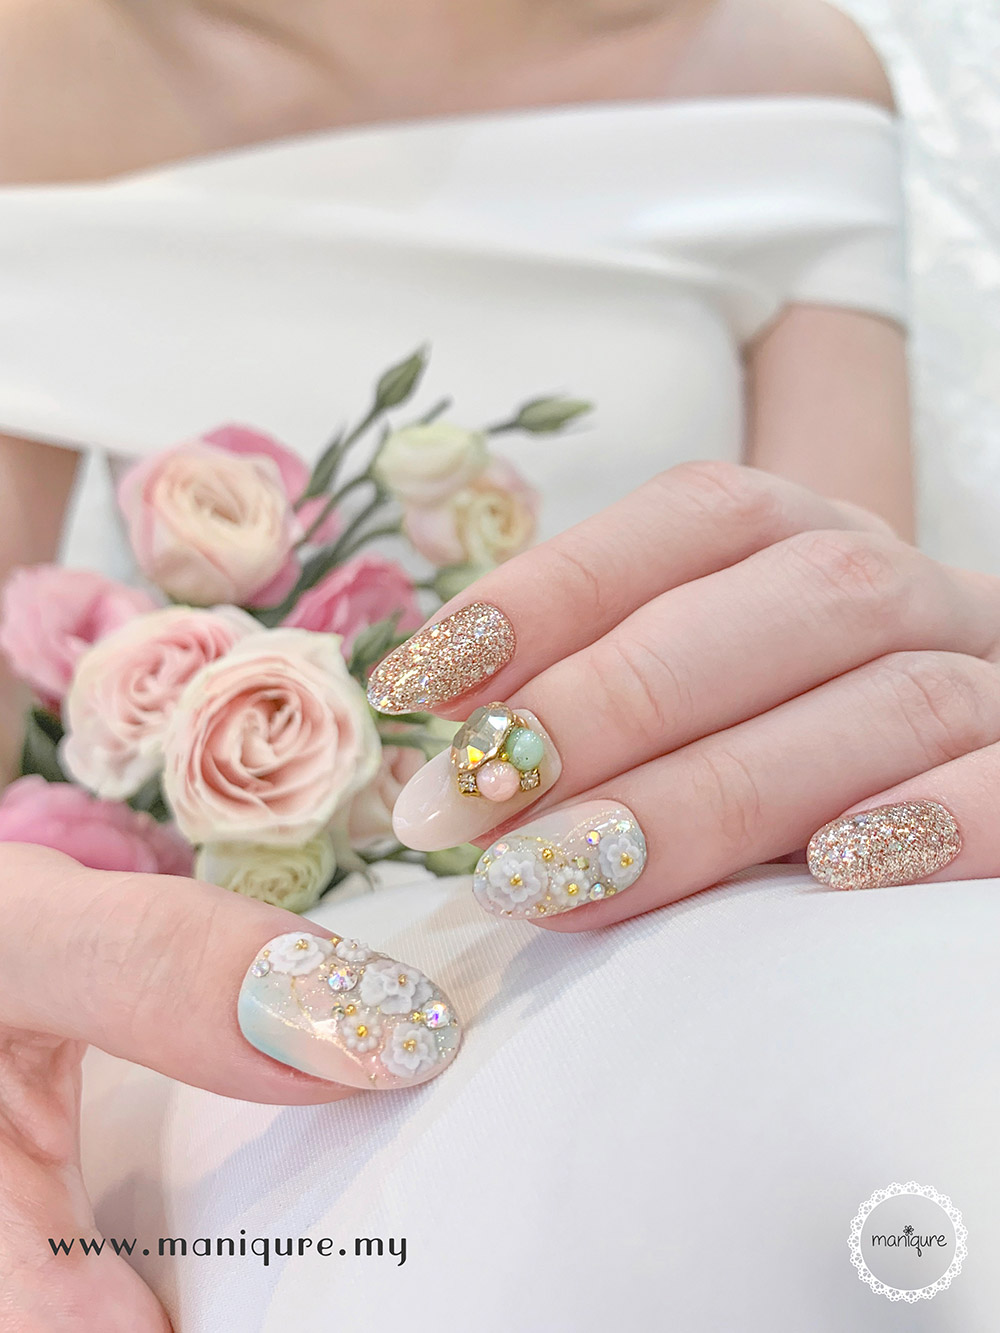 Eustoma Nails 洋桔梗美甲